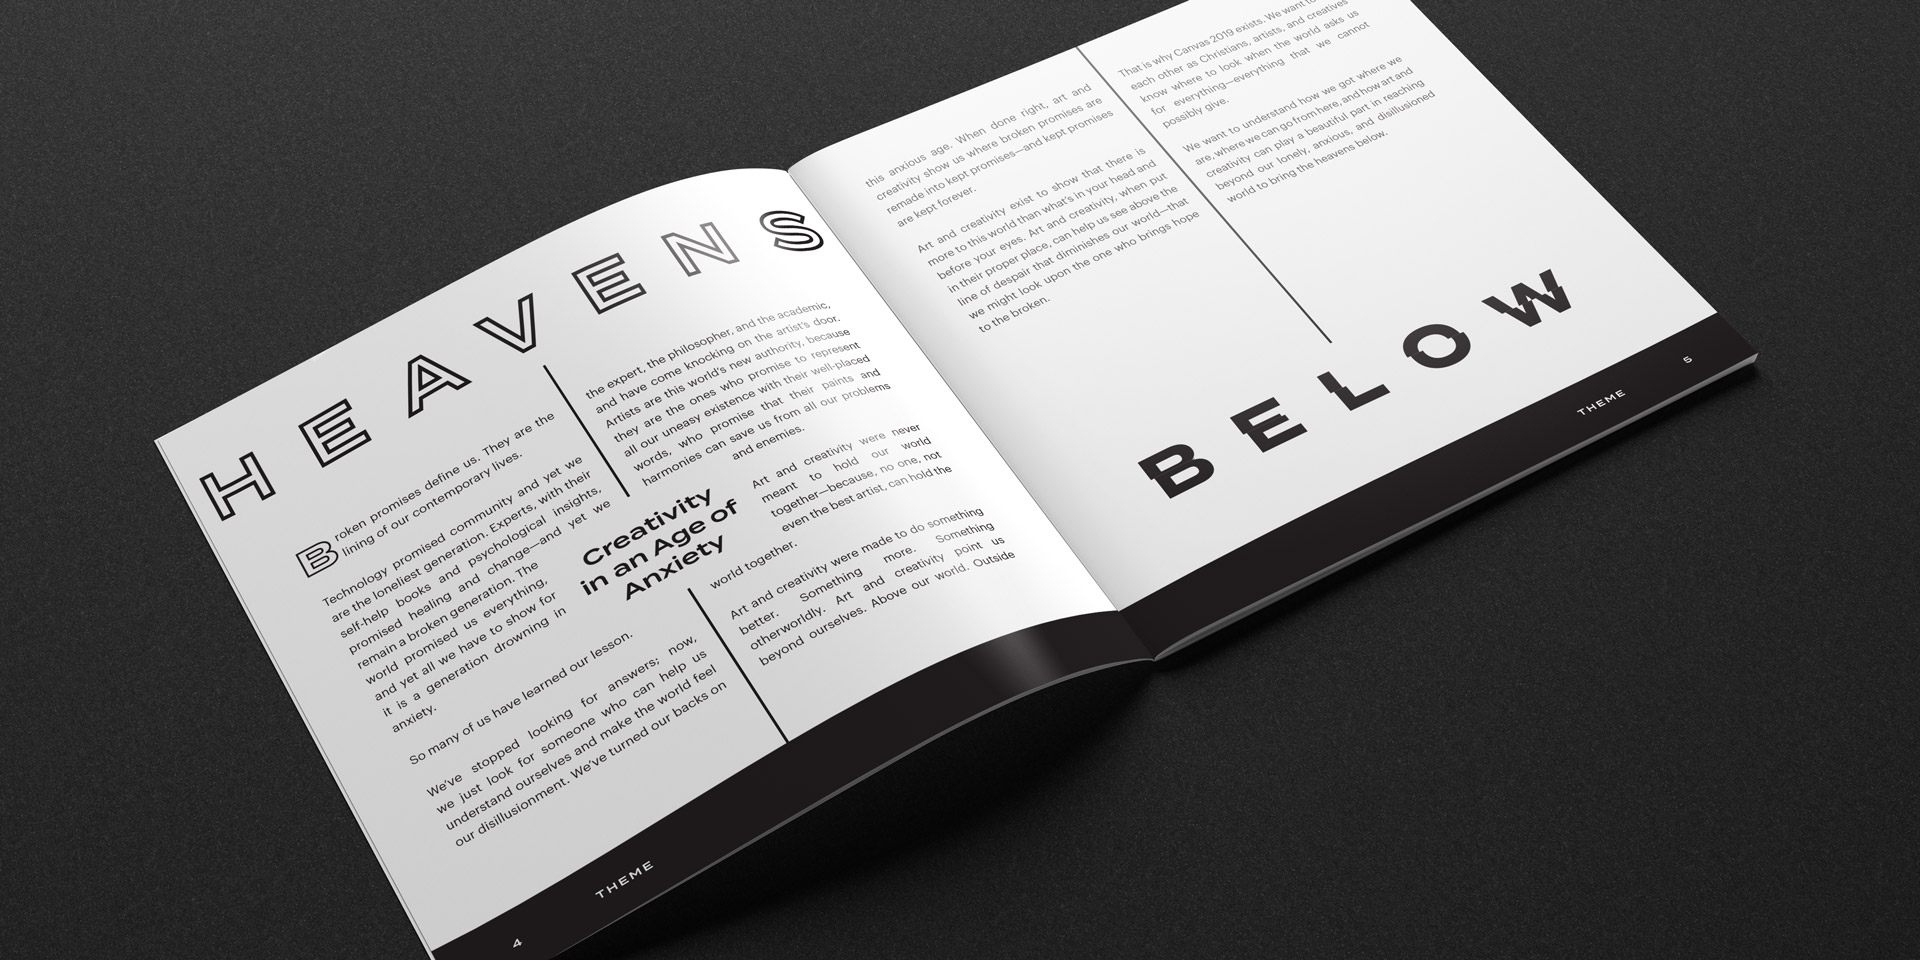 - The Canvas ConferenceCreative Direction, Collateral, Environmental & Web Design